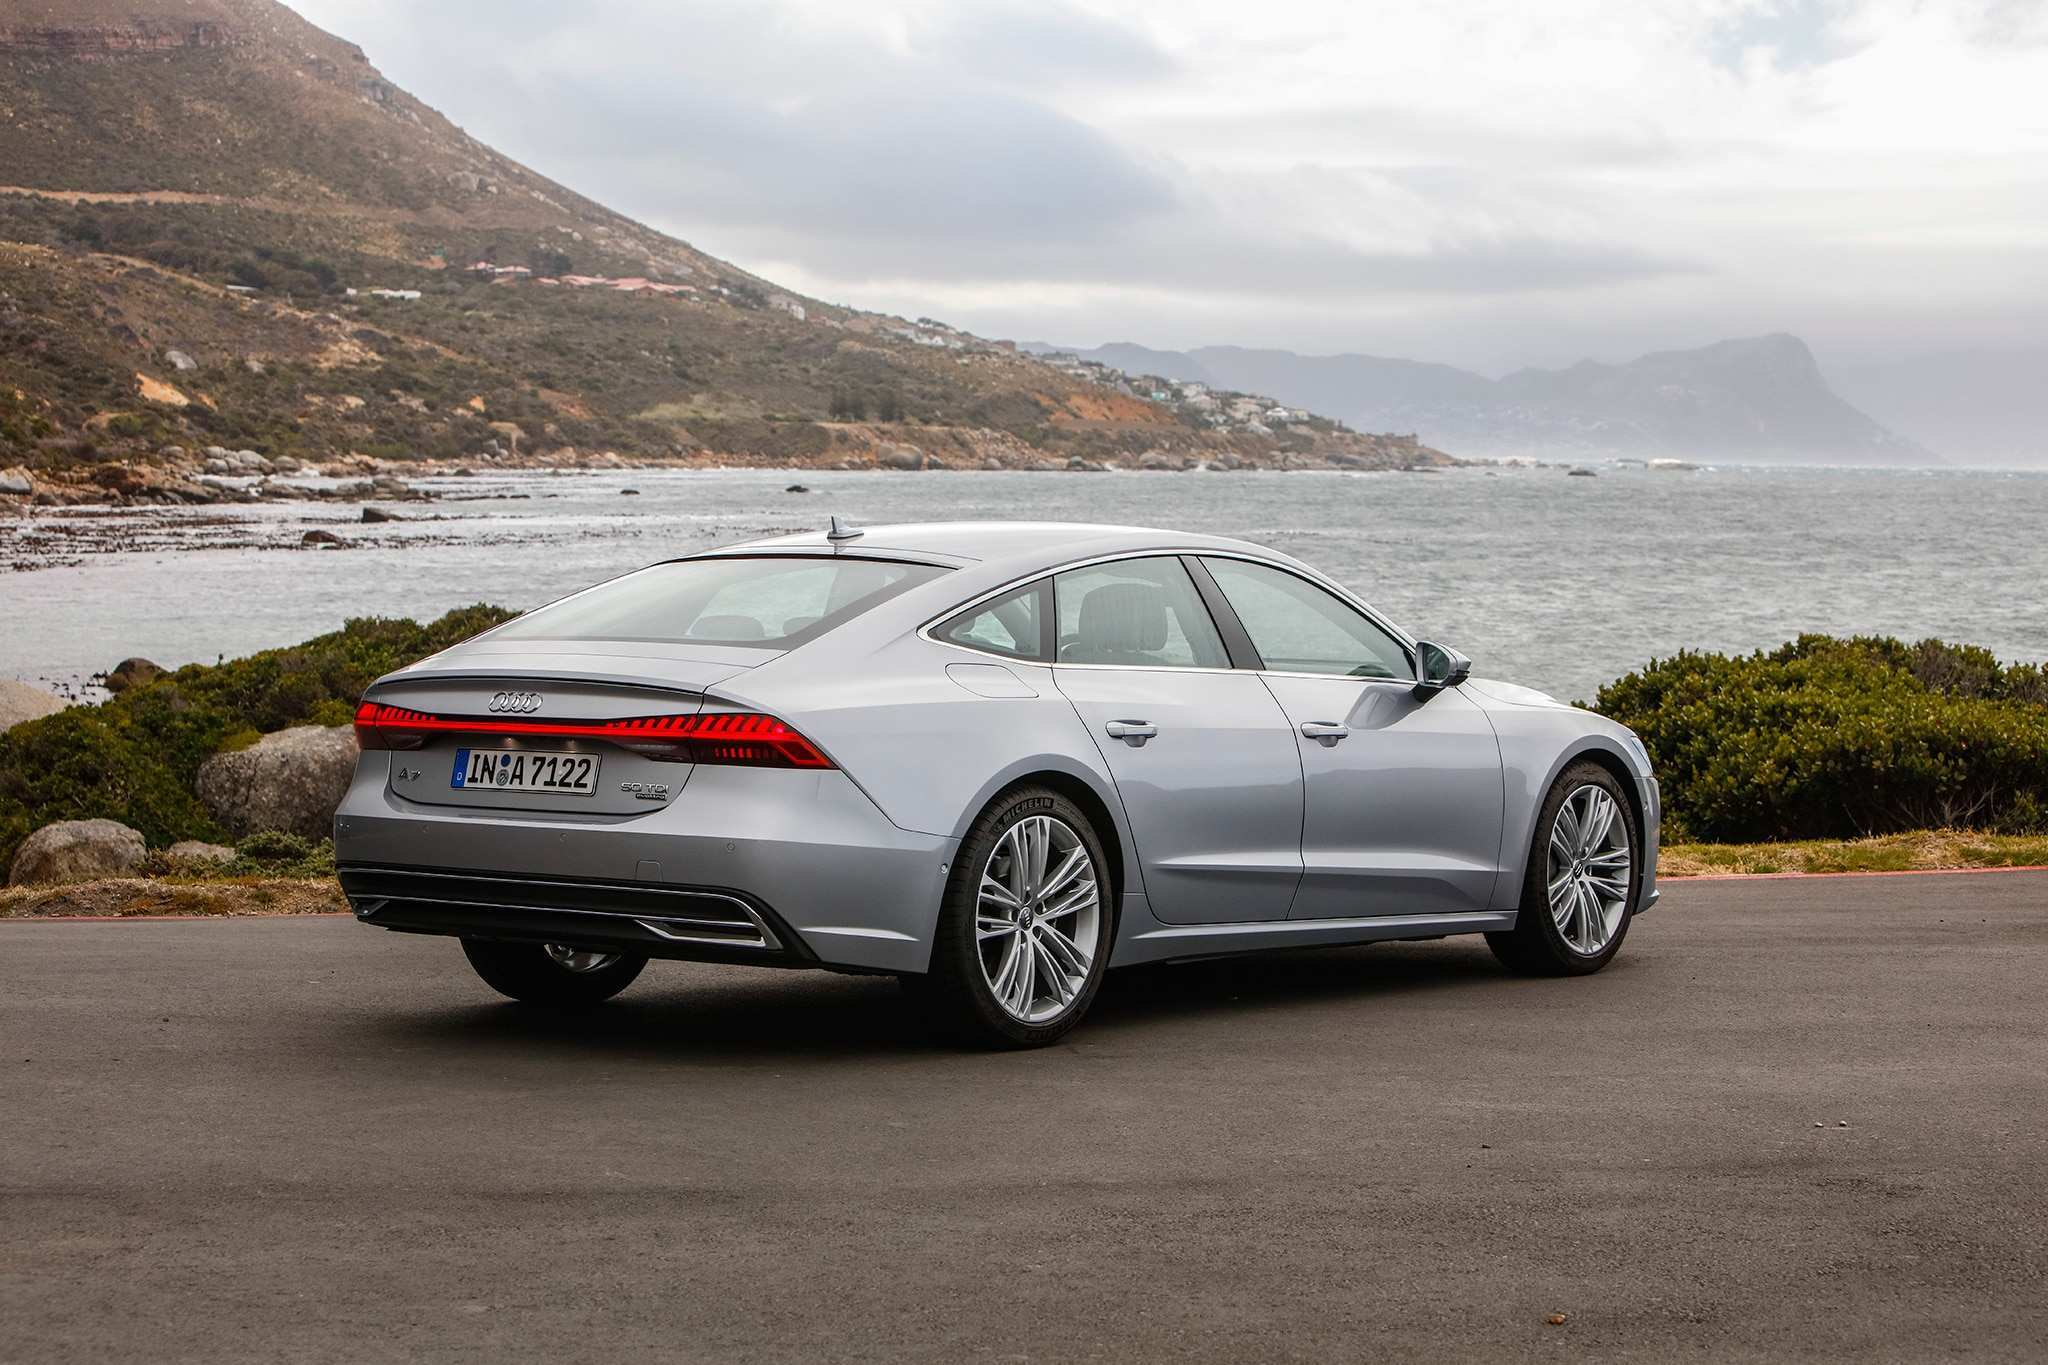 61 Best Review 2019 Audi A7 Msrp Redesign and Concept by 2019 Audi A7 Msrp